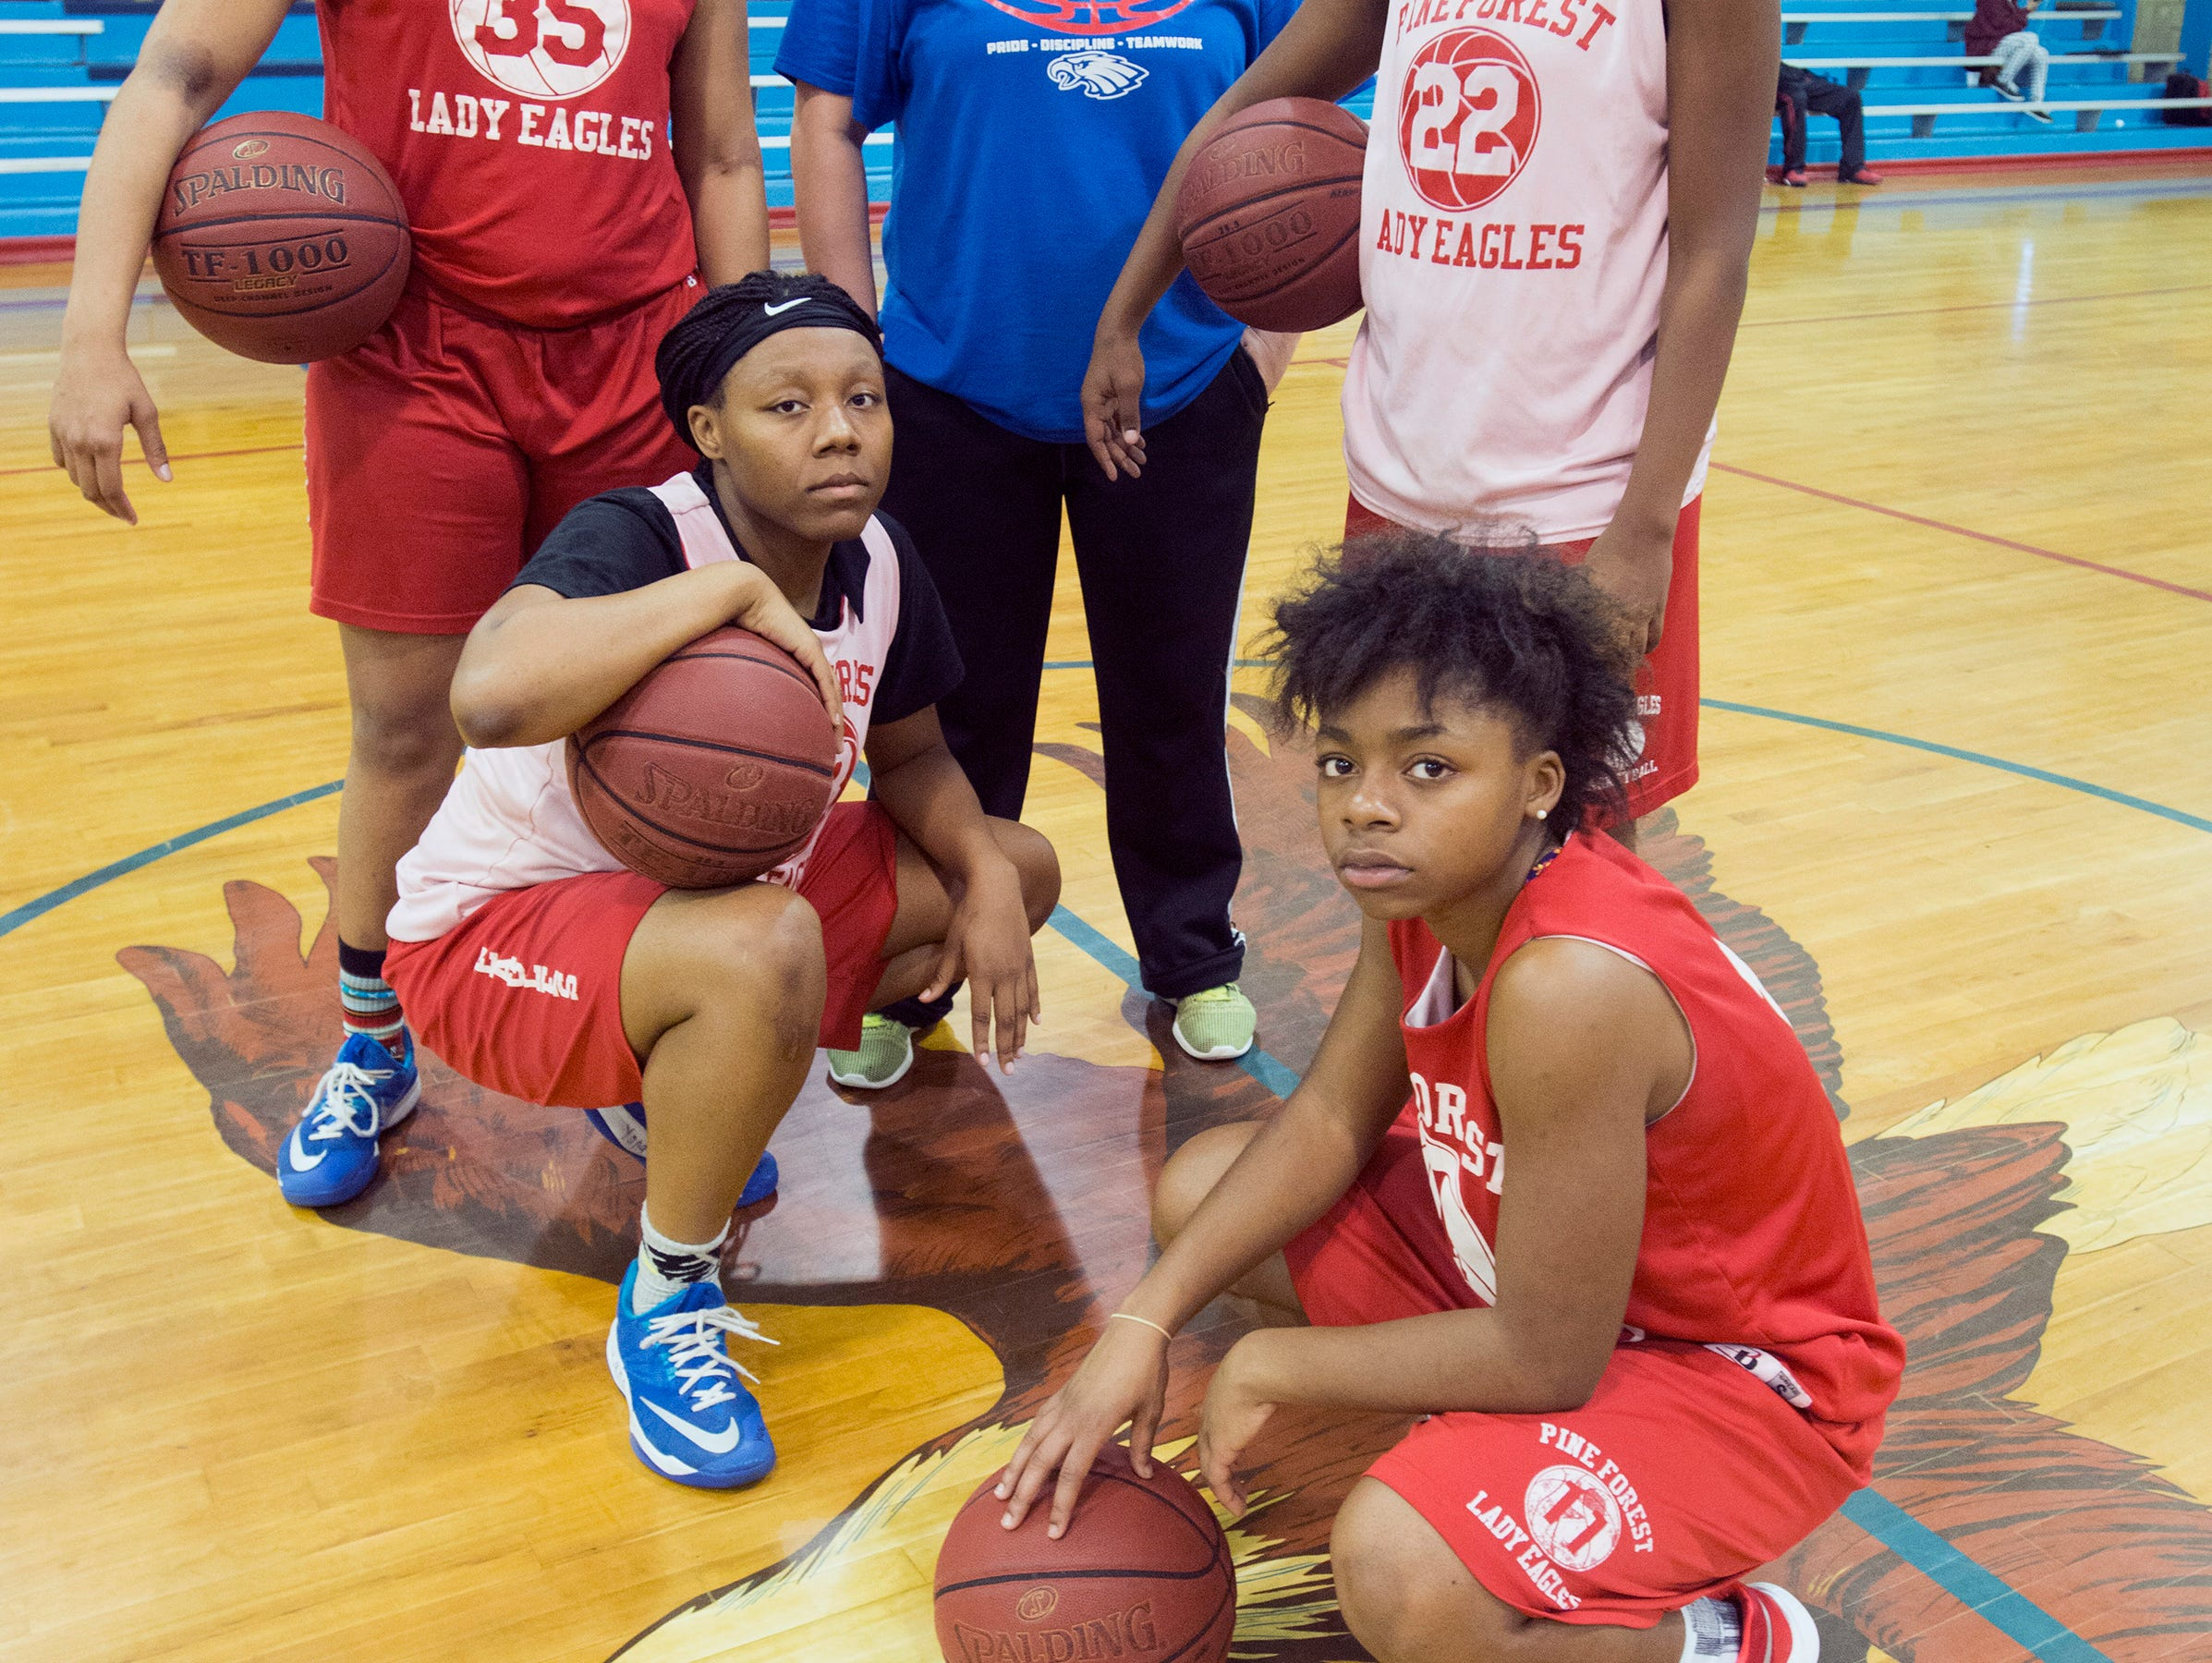 Pine Forest High School Girls Basketball coach, Zaria Williams, center, is rebuilding the Lady Eagles program with help from players Kim Payne, (No. 33), Bryanna Snowden, (No. 35), Destiny Ervin, (No .22) and Yeisha Taylor, (No. 11).